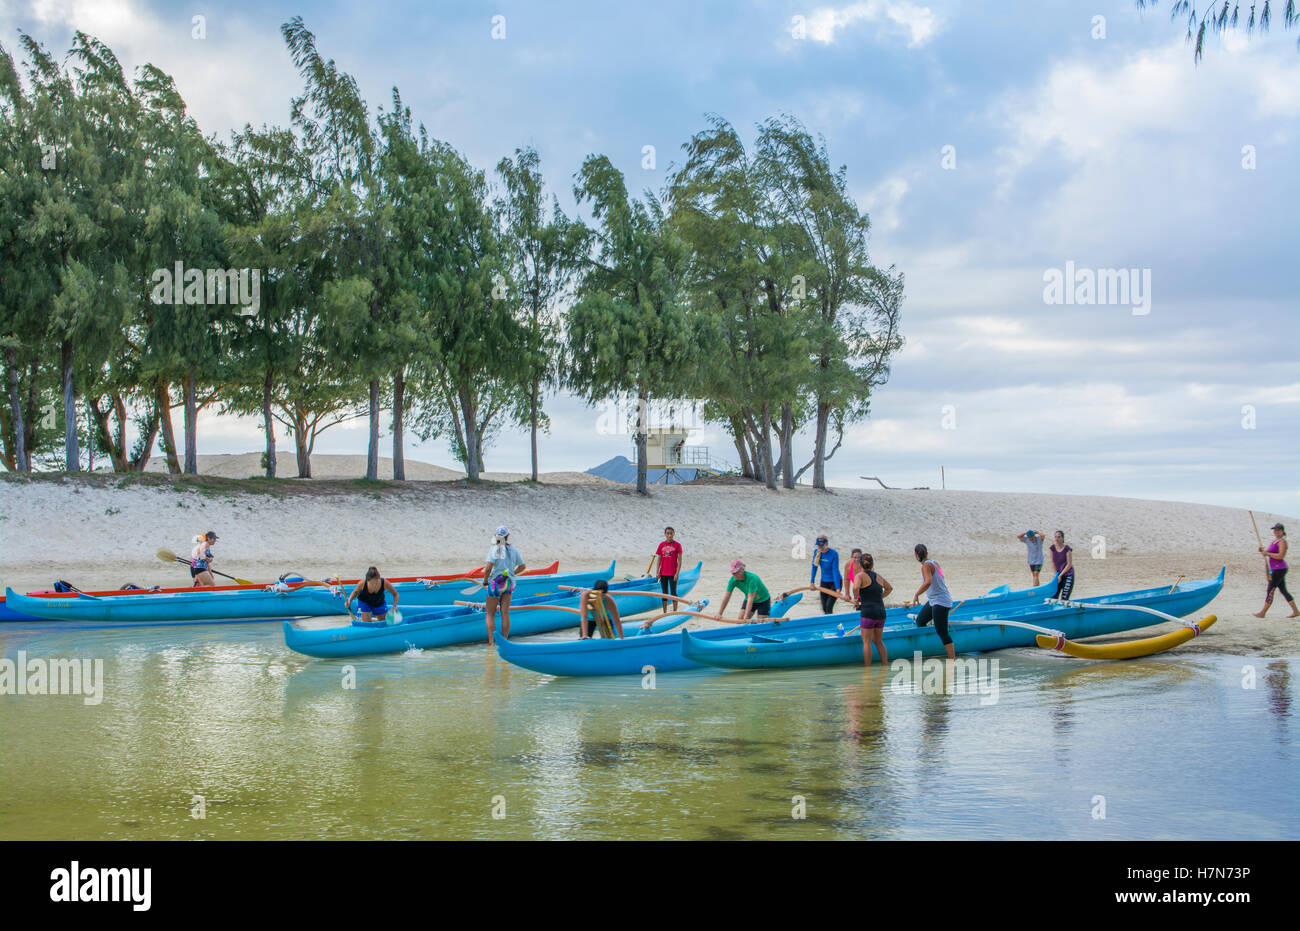 Kailua Hawaii Oahu canoe club rowing on Outrigger Canoes in bay practice sports athletics exerfcise - Stock Image